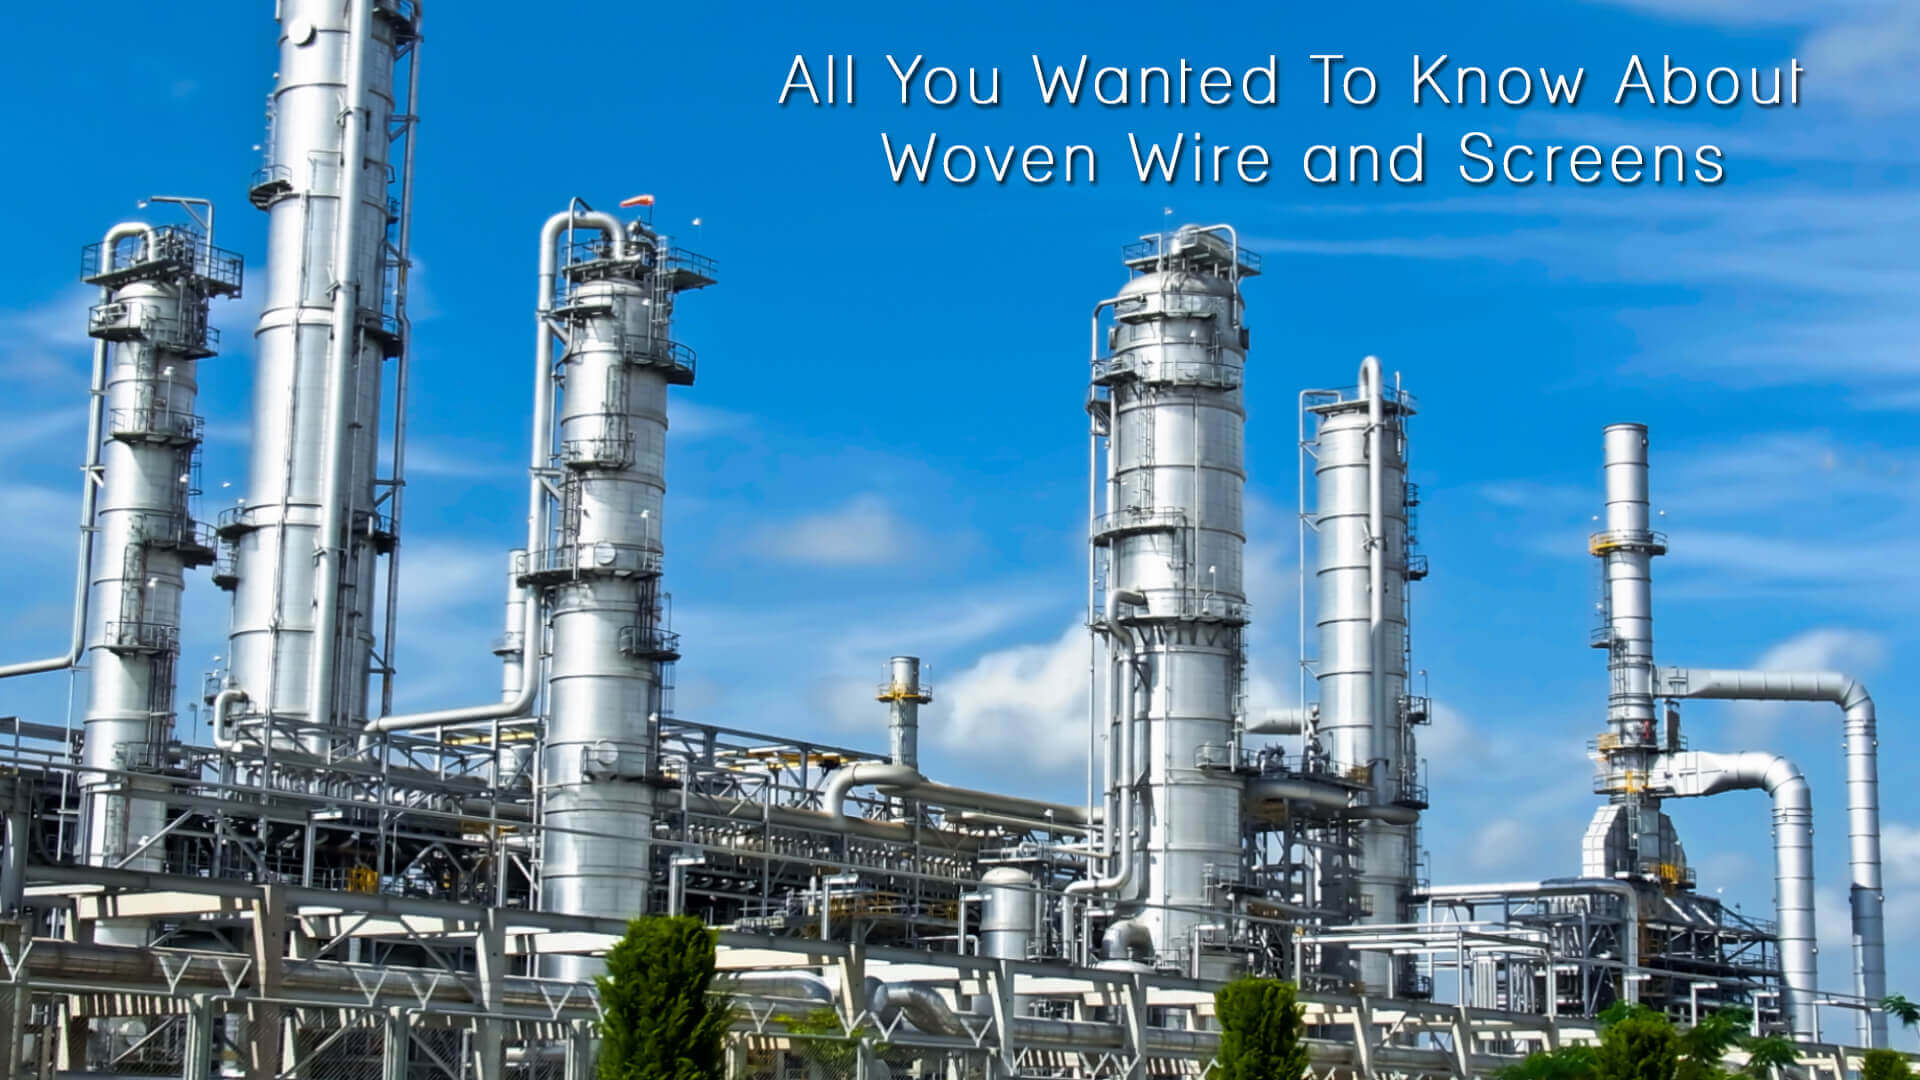 All You Wanted To Know About Woven Wire and Screens